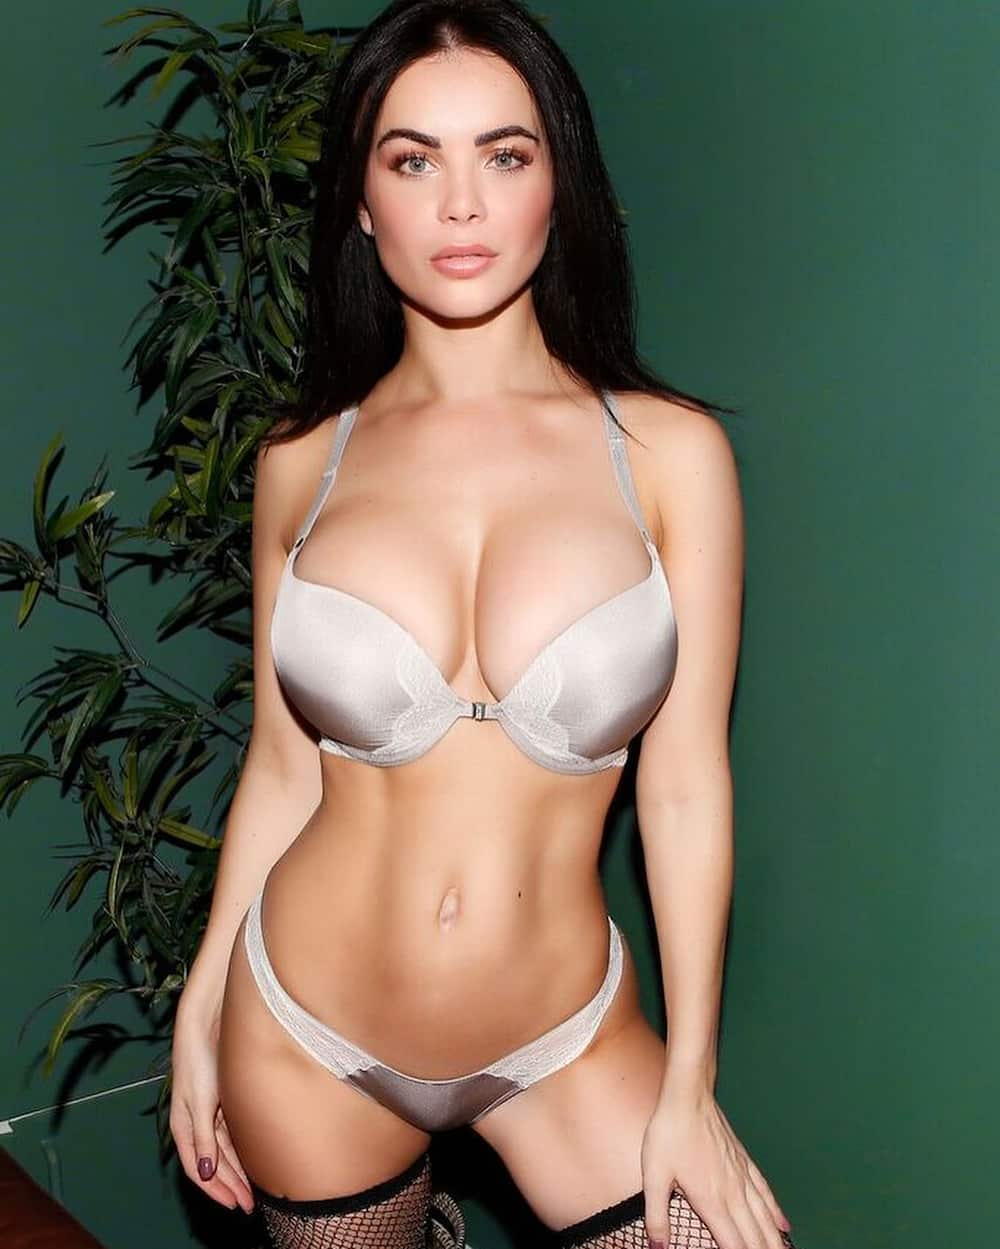 Emma Glover: 10 facts about the Instagram model